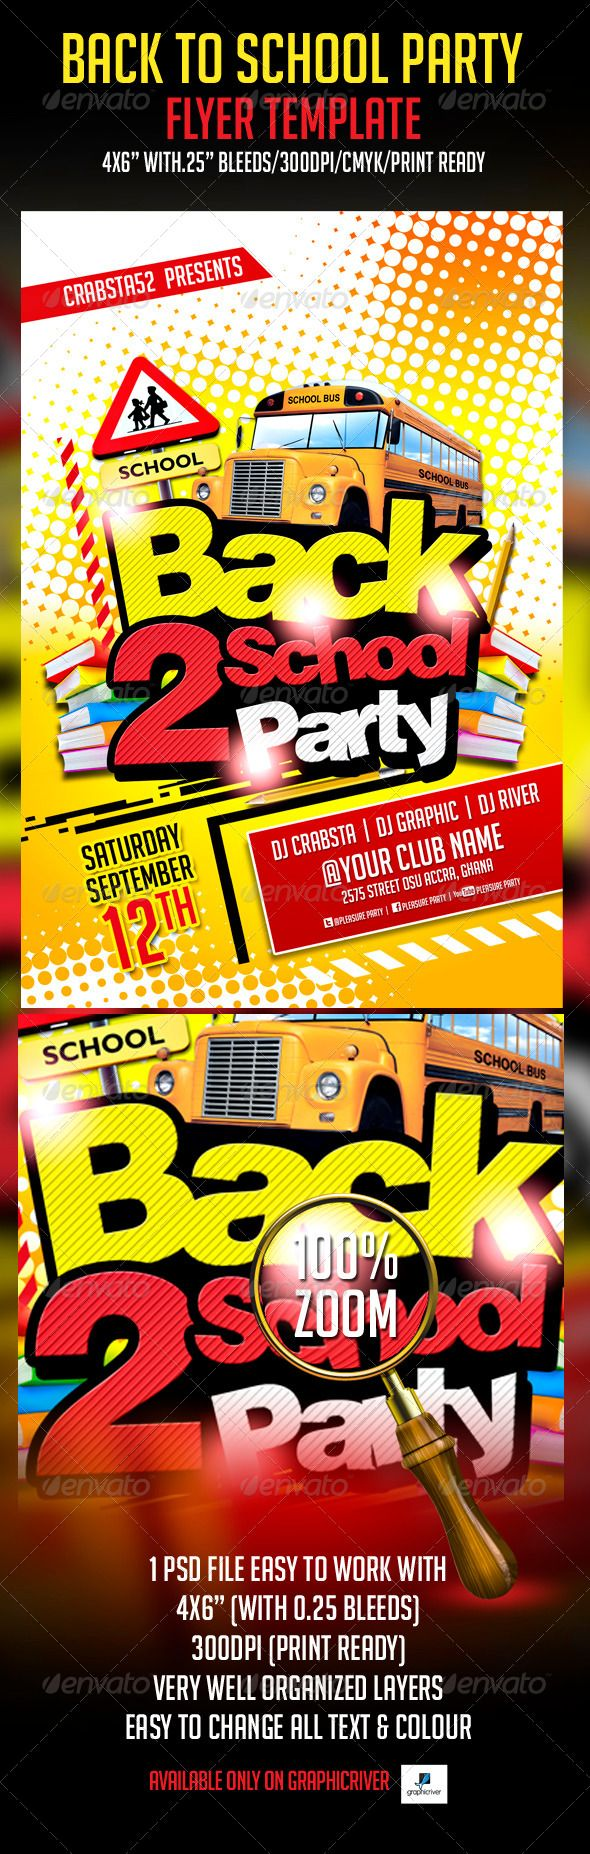 Back To School Party Flyer Template | Party flyer and Flyer template